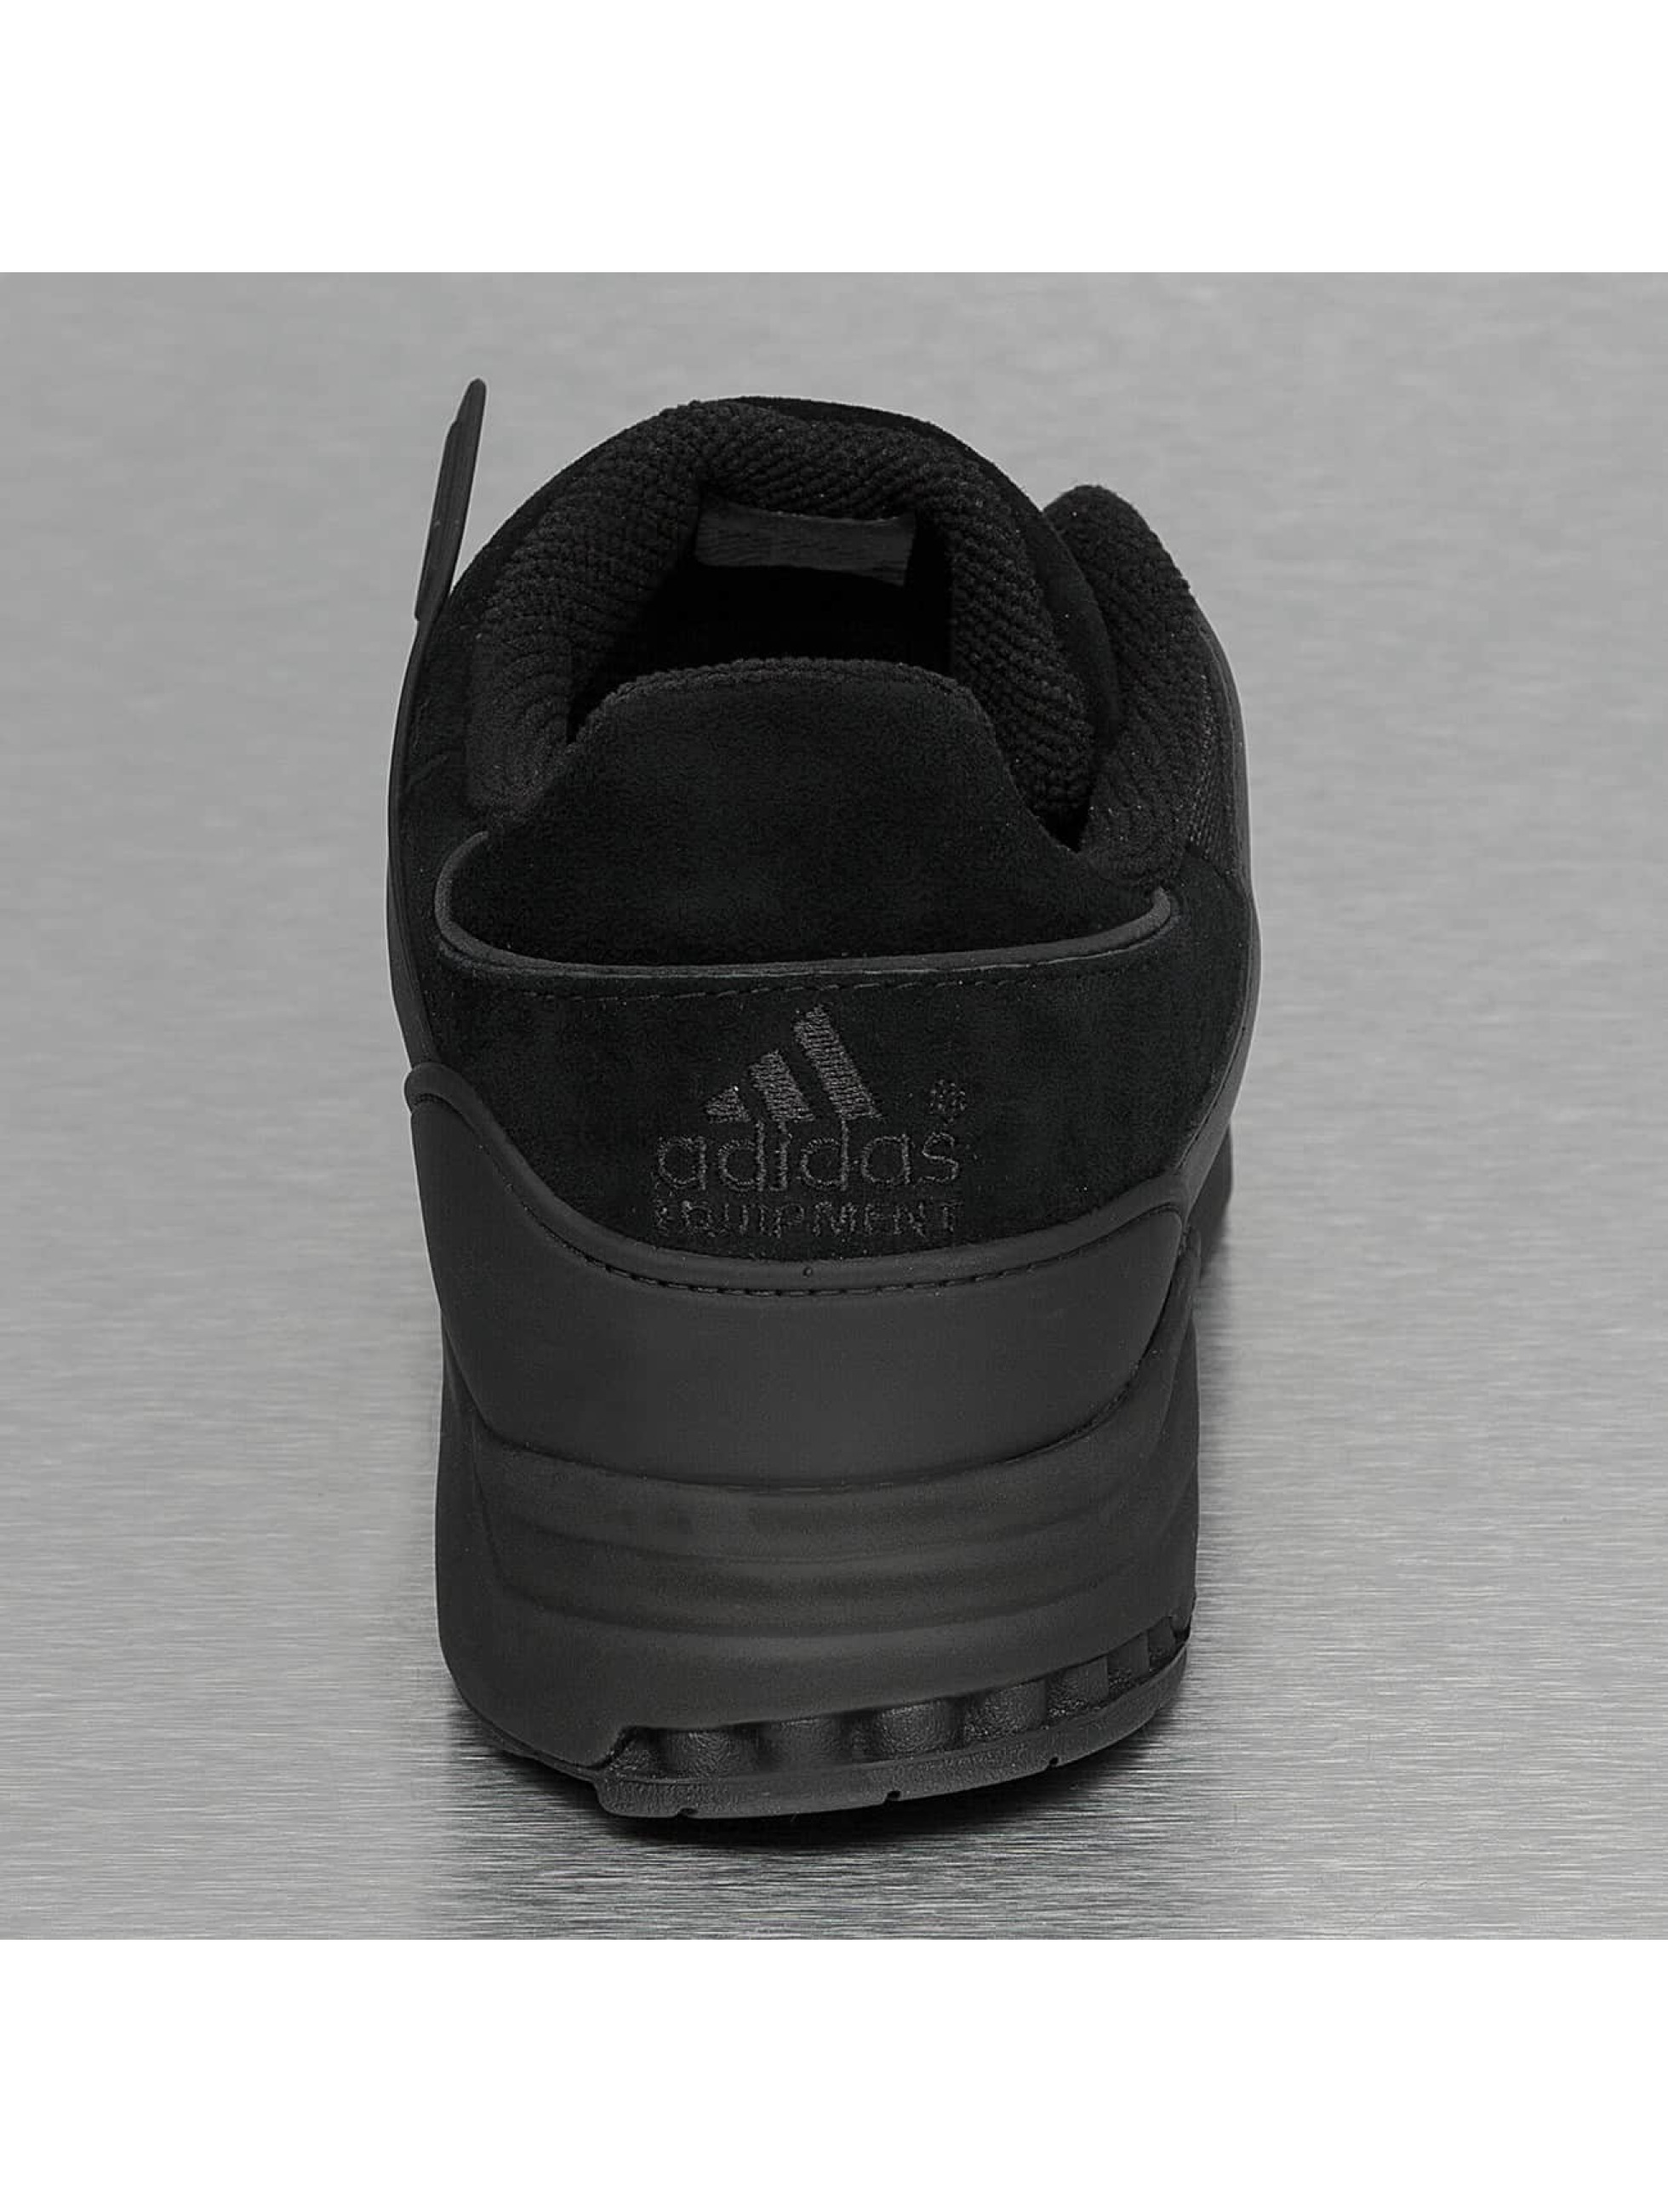 adidas Sneaker Equipment schwarz